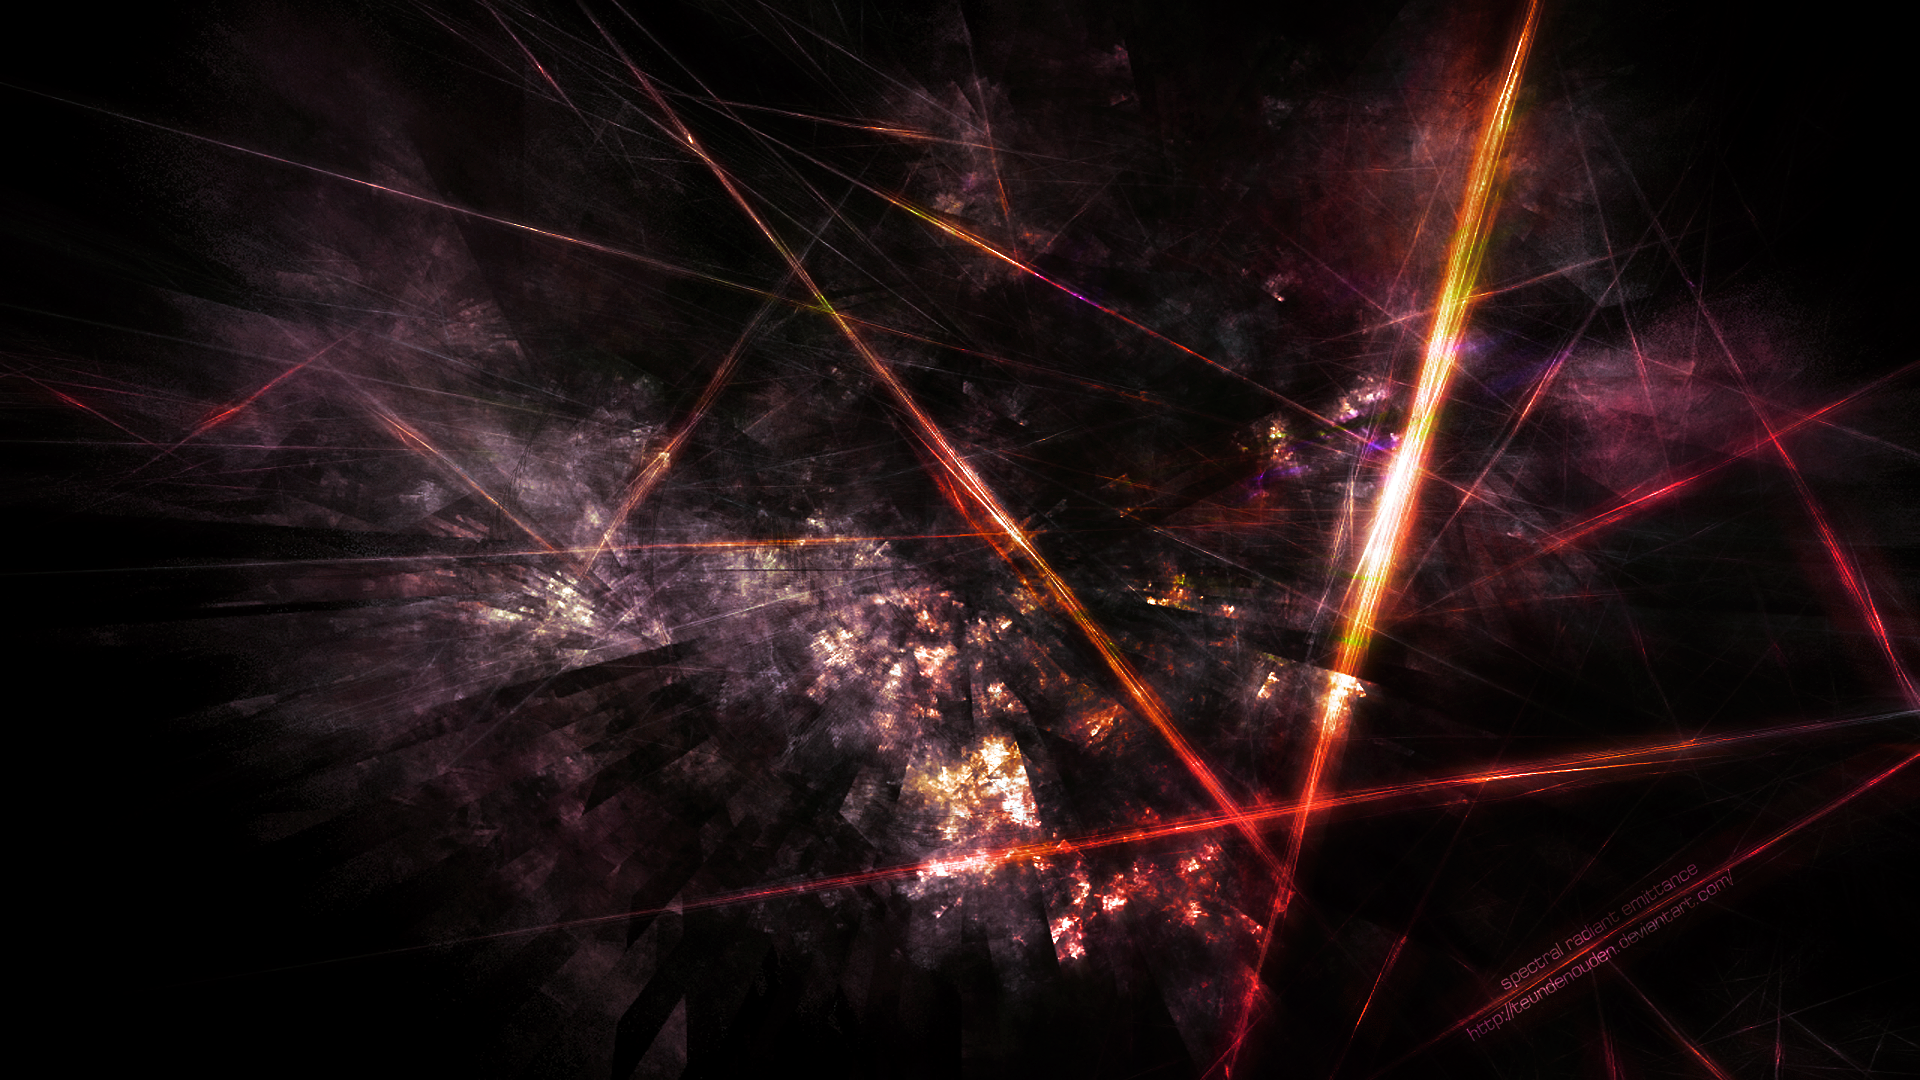 spectral radiant emittance by teundenouden customization wallpaper 1920x1080